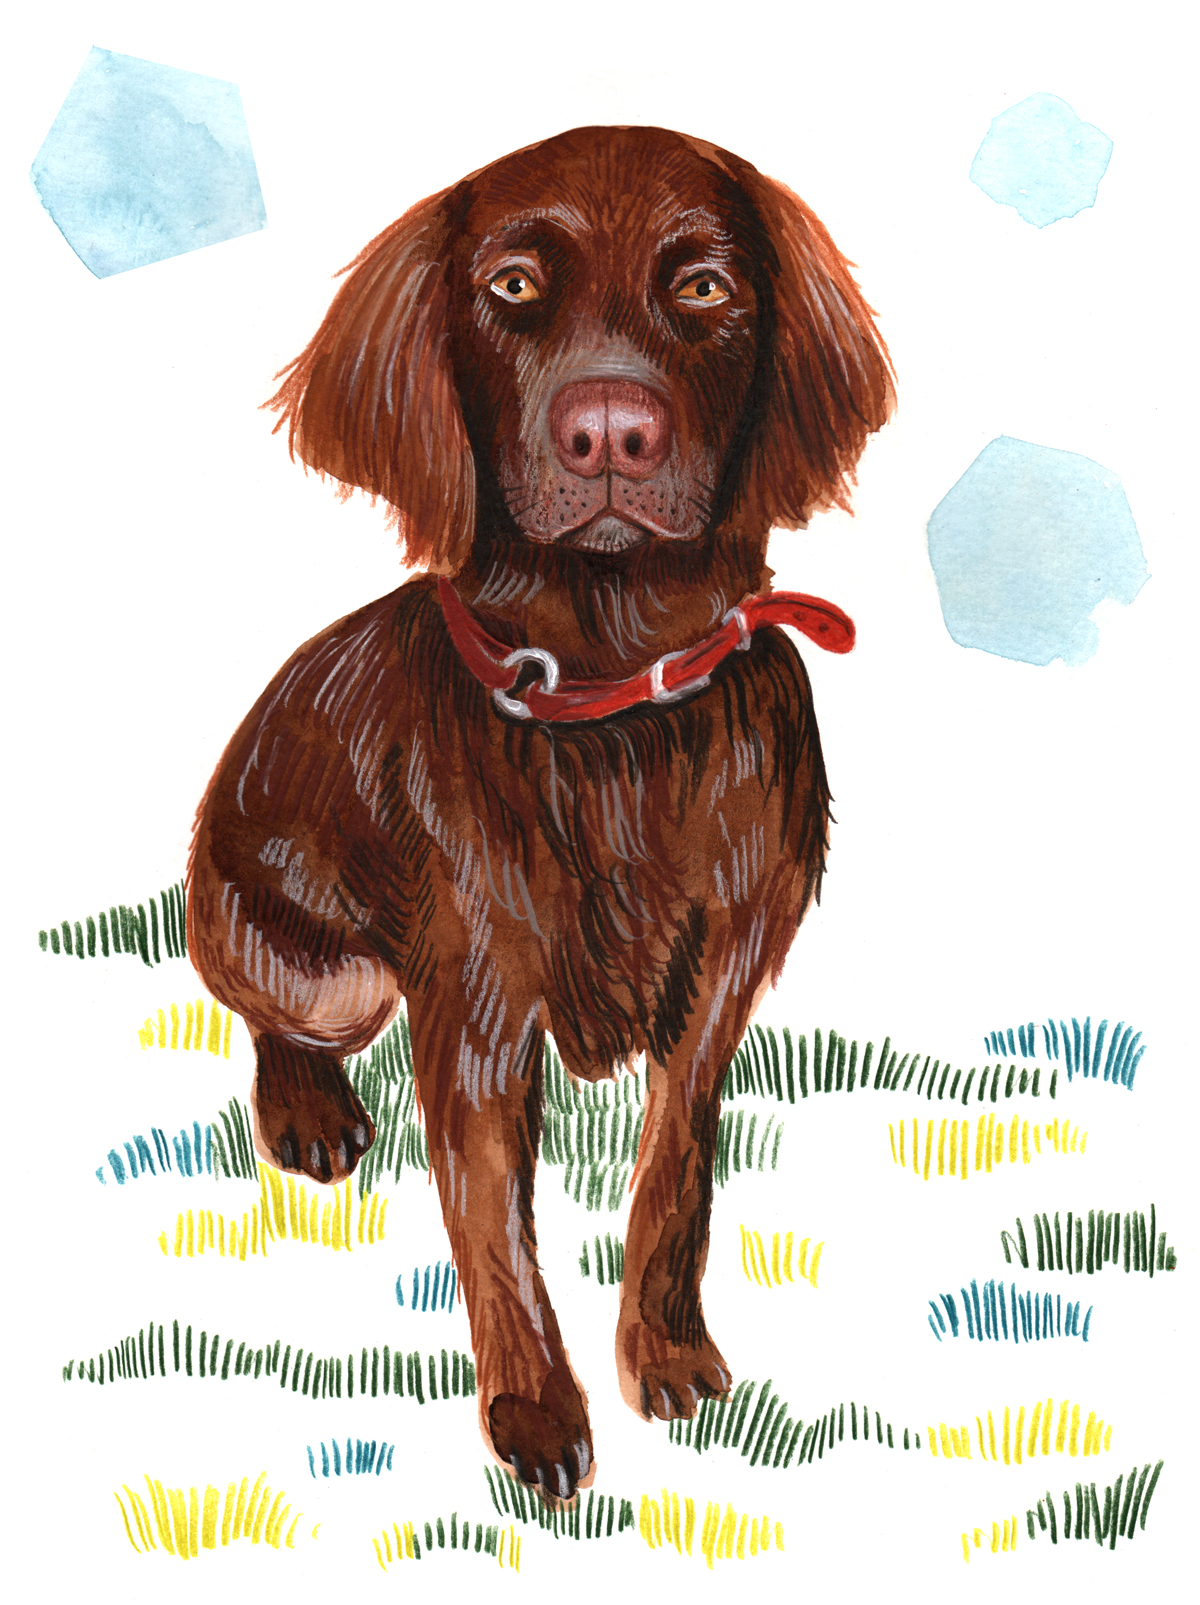 AnneQuadflieg_Jagdhund_2_Aquarelle_Illustration_small.jpg